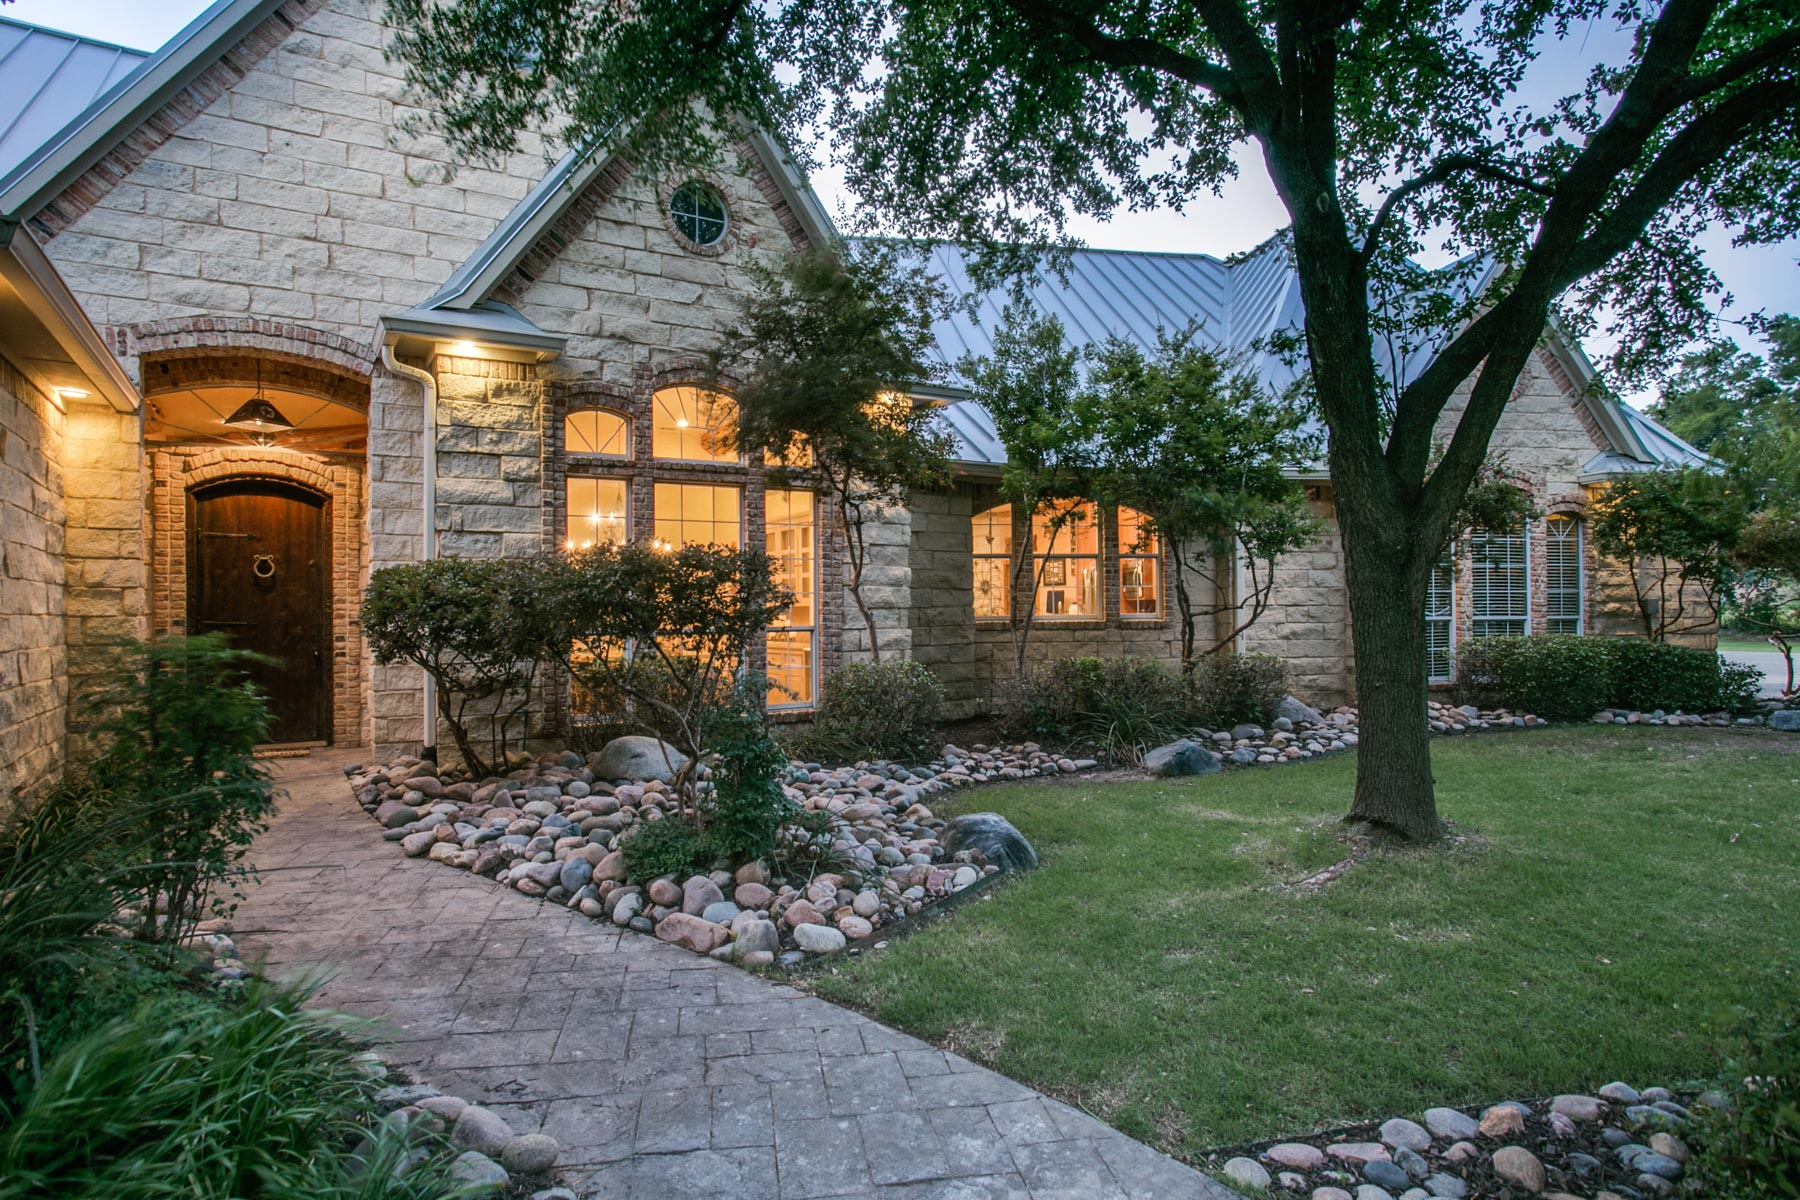 Single Family Home for Sale at Equestrian Horse Property 1340 E FM 544 Wylie, Texas 75098 United States